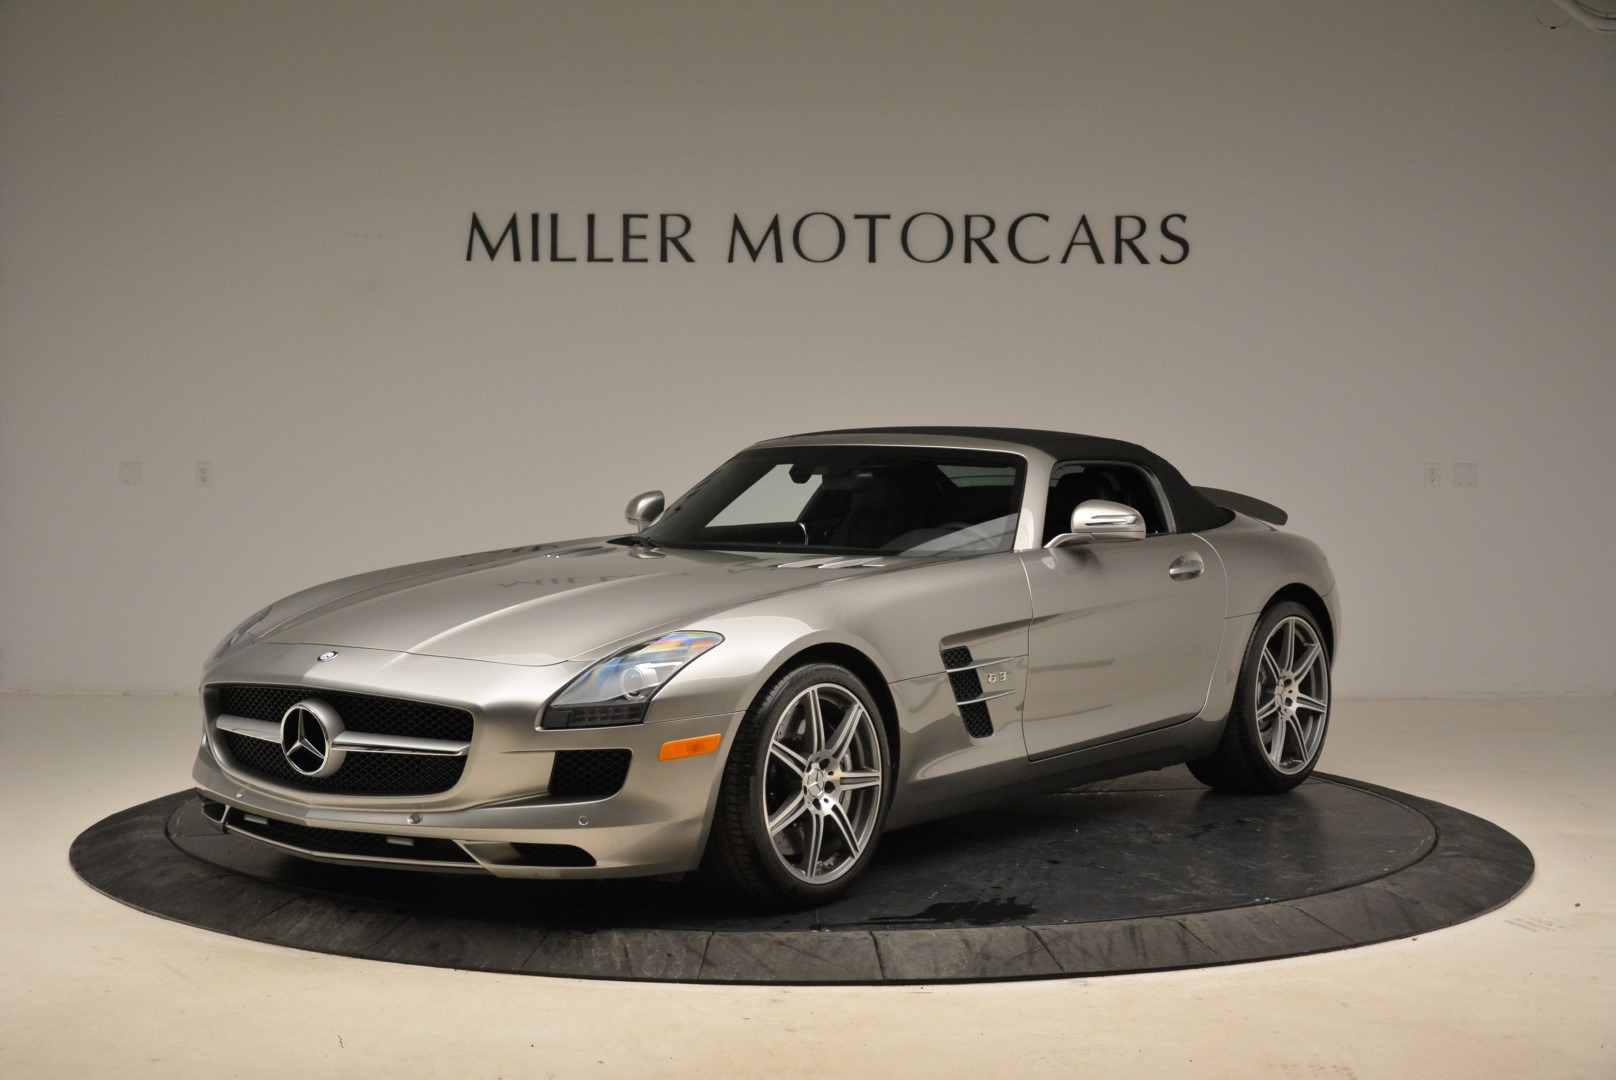 Used 2012 Mercedes-Benz SLS AMG  For Sale In Westport, CT 2068_p13